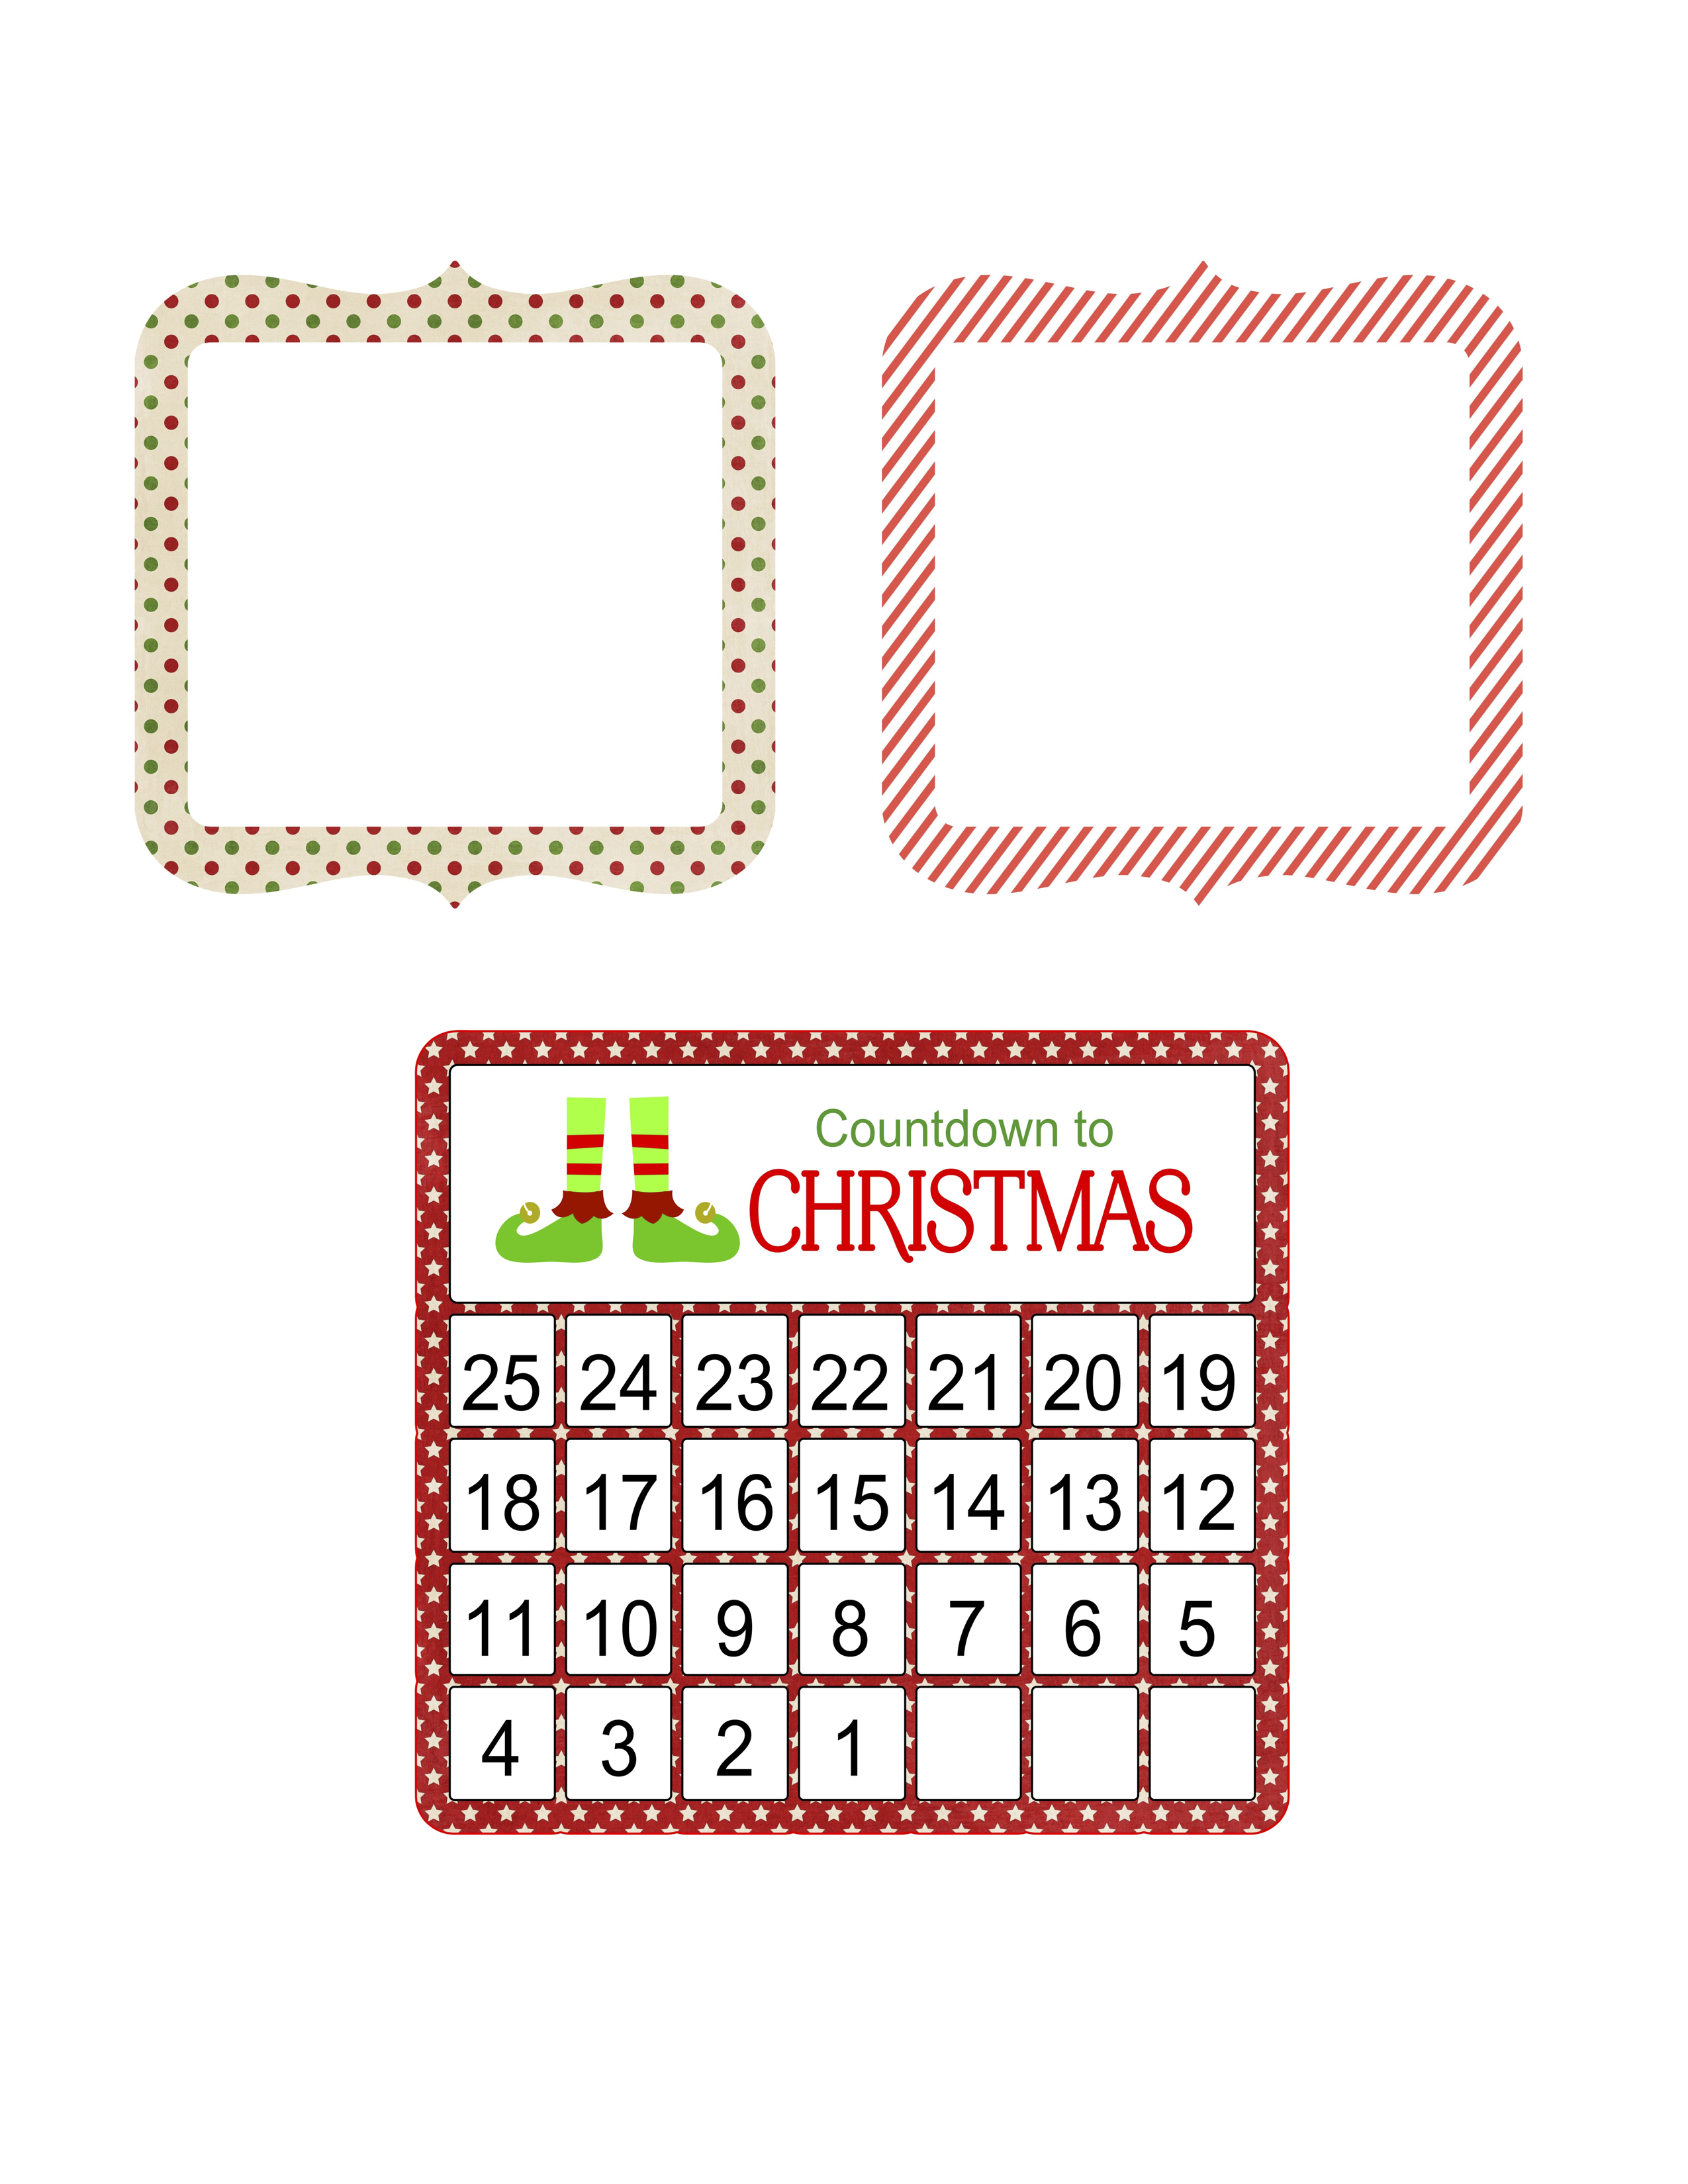 picture about Printable Countdown Calendar titled Printable Countdown in the direction of Xmas Calendar and observe playing cards